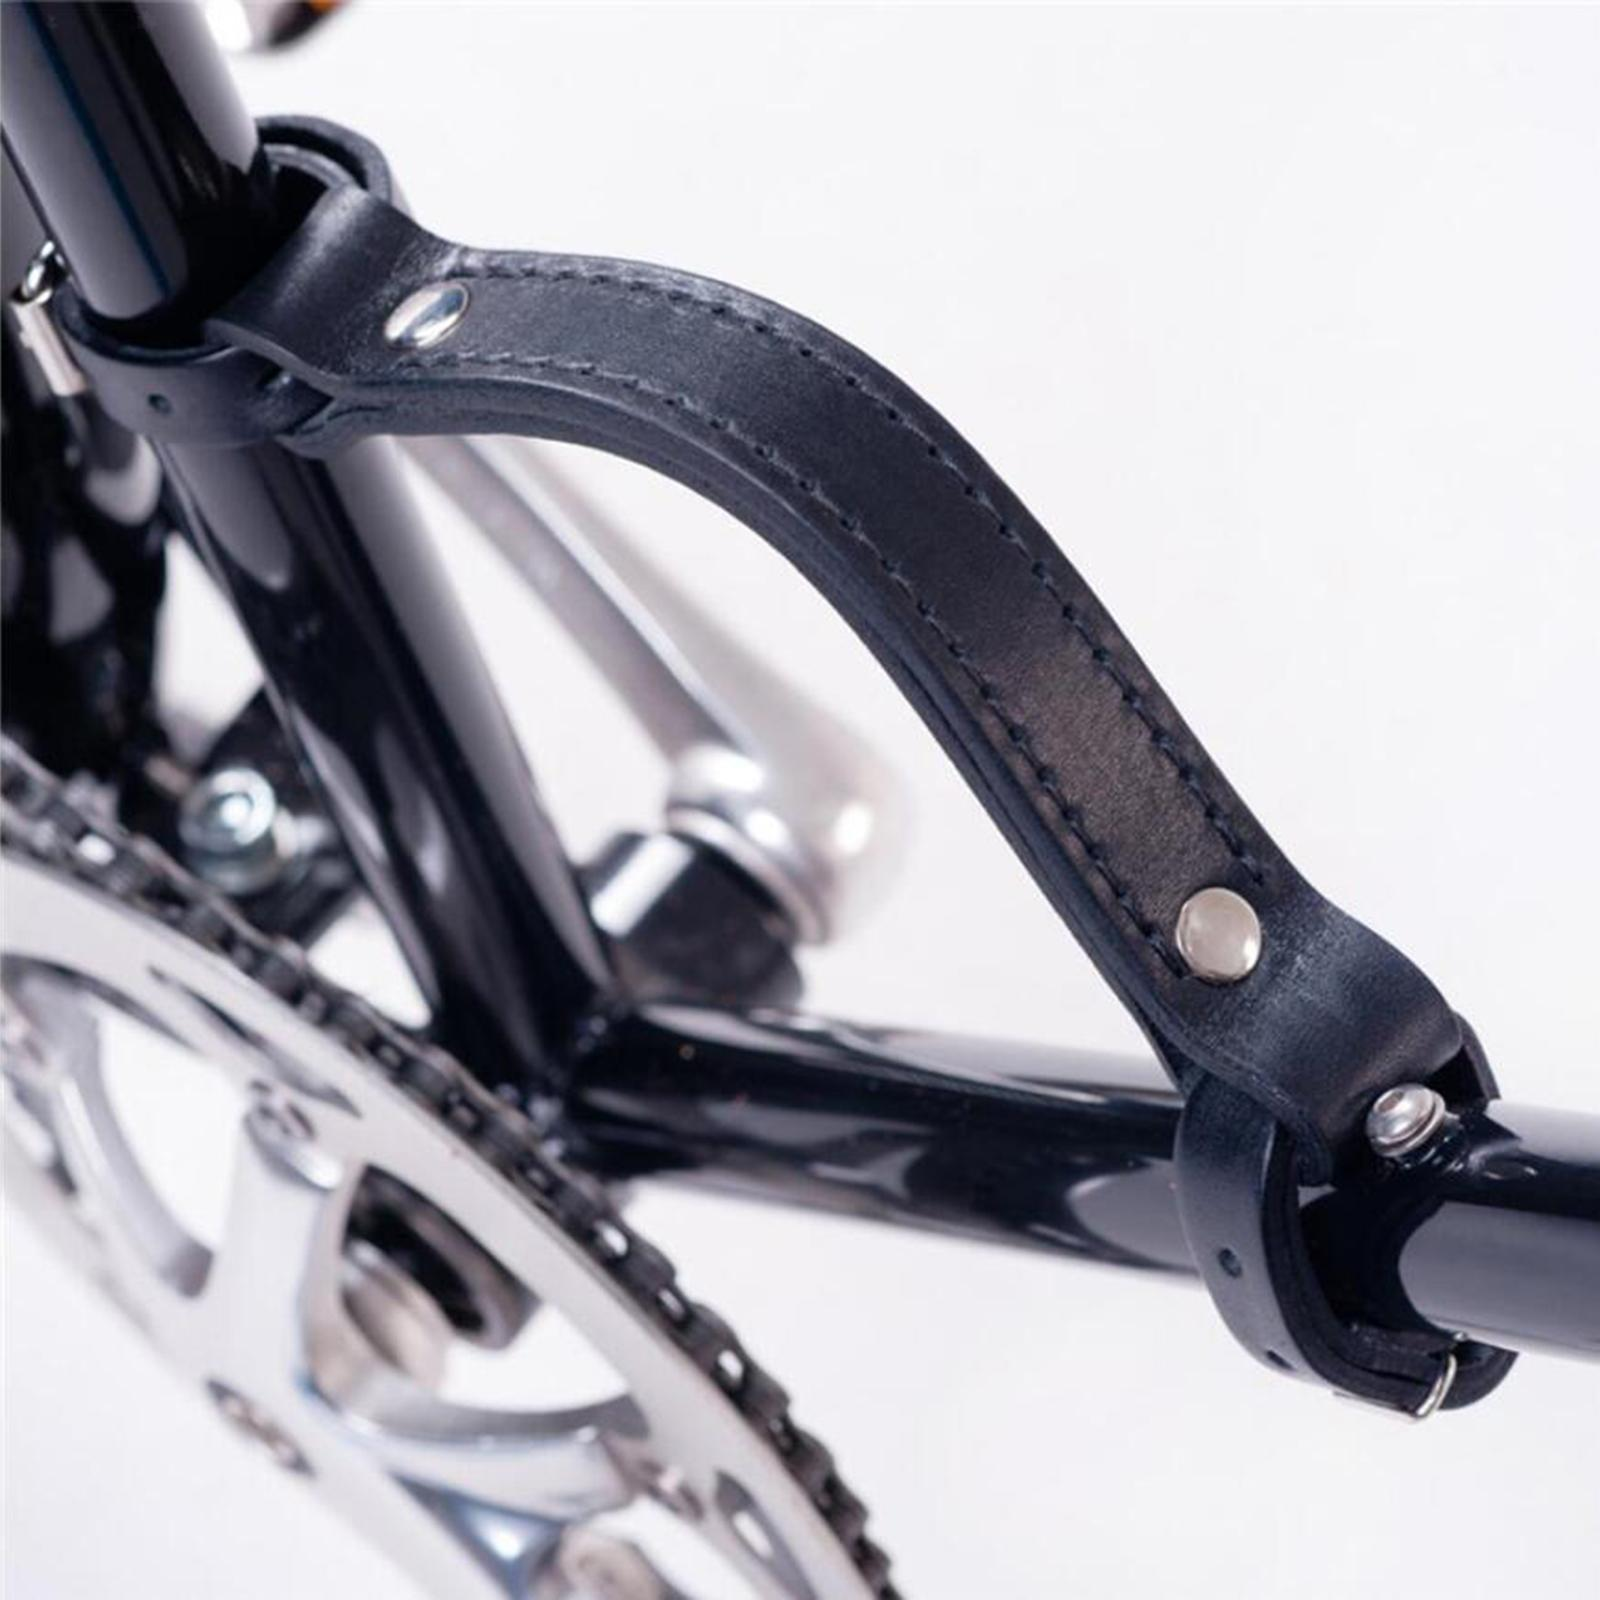 thumbnail 4 - Durable Bike Frame Handle High Strength Carry Strap Carrier Transport Lifter